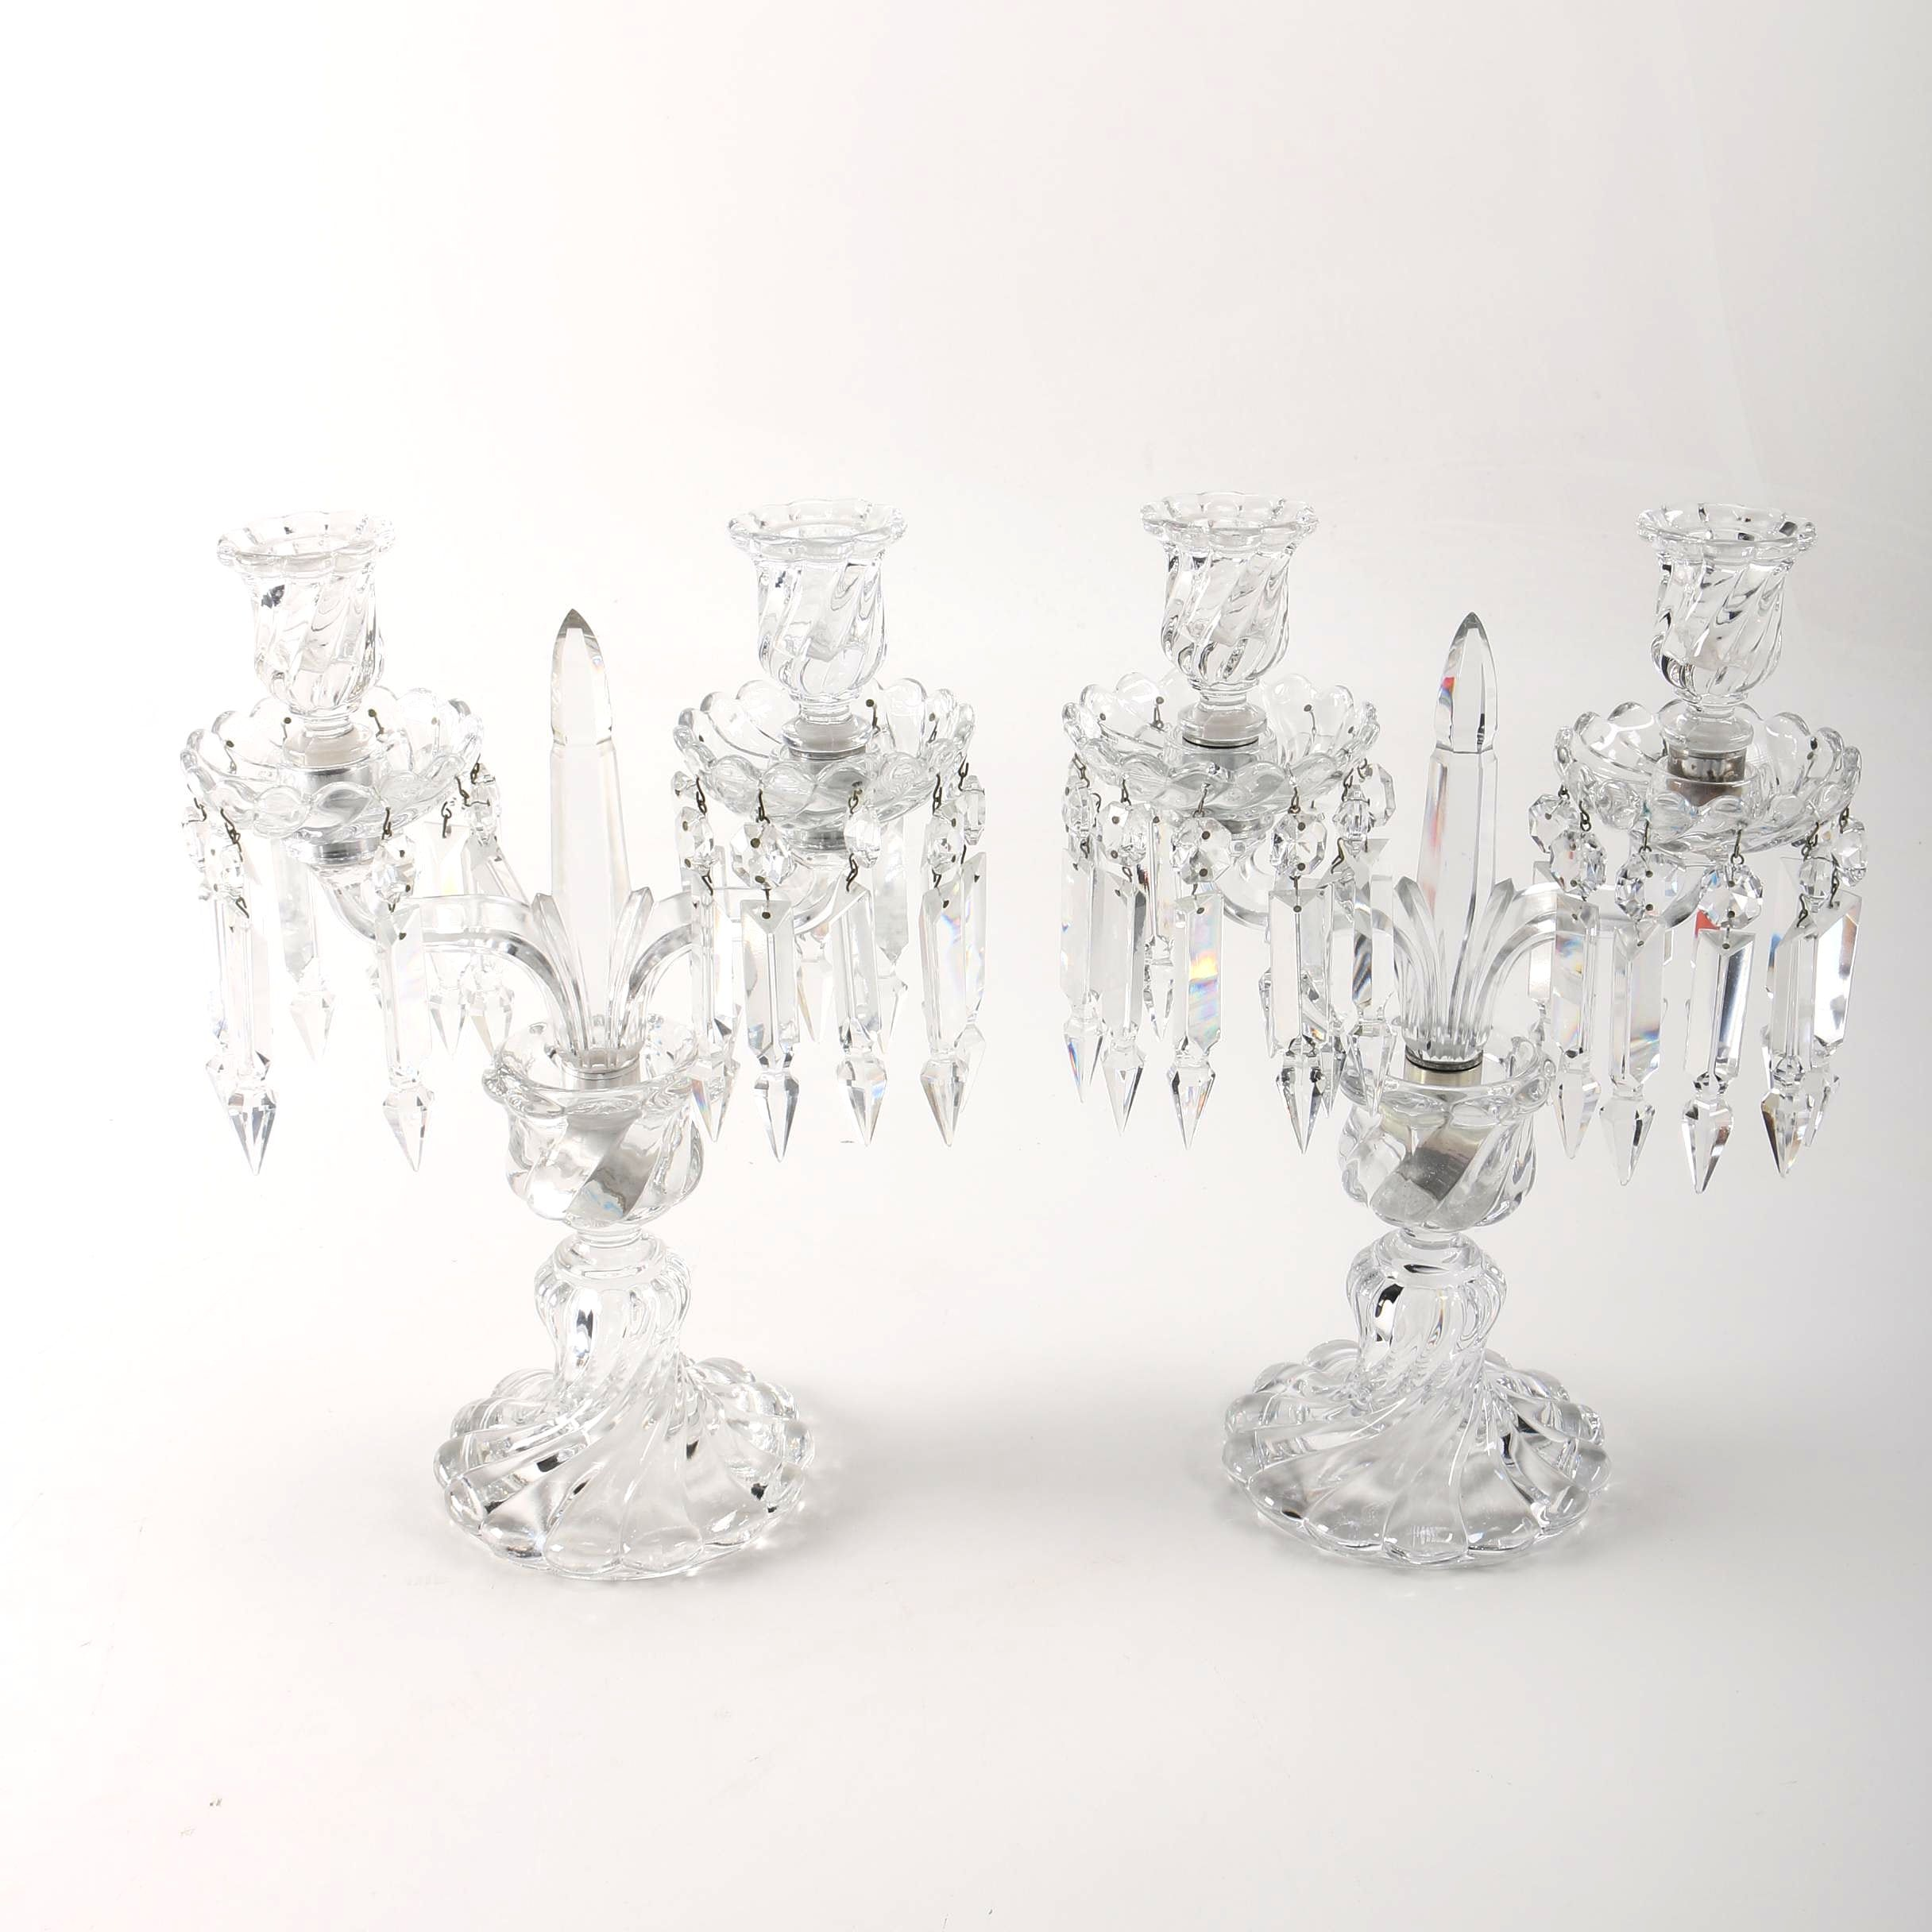 Pair of Baccarat Crystal Candelabras